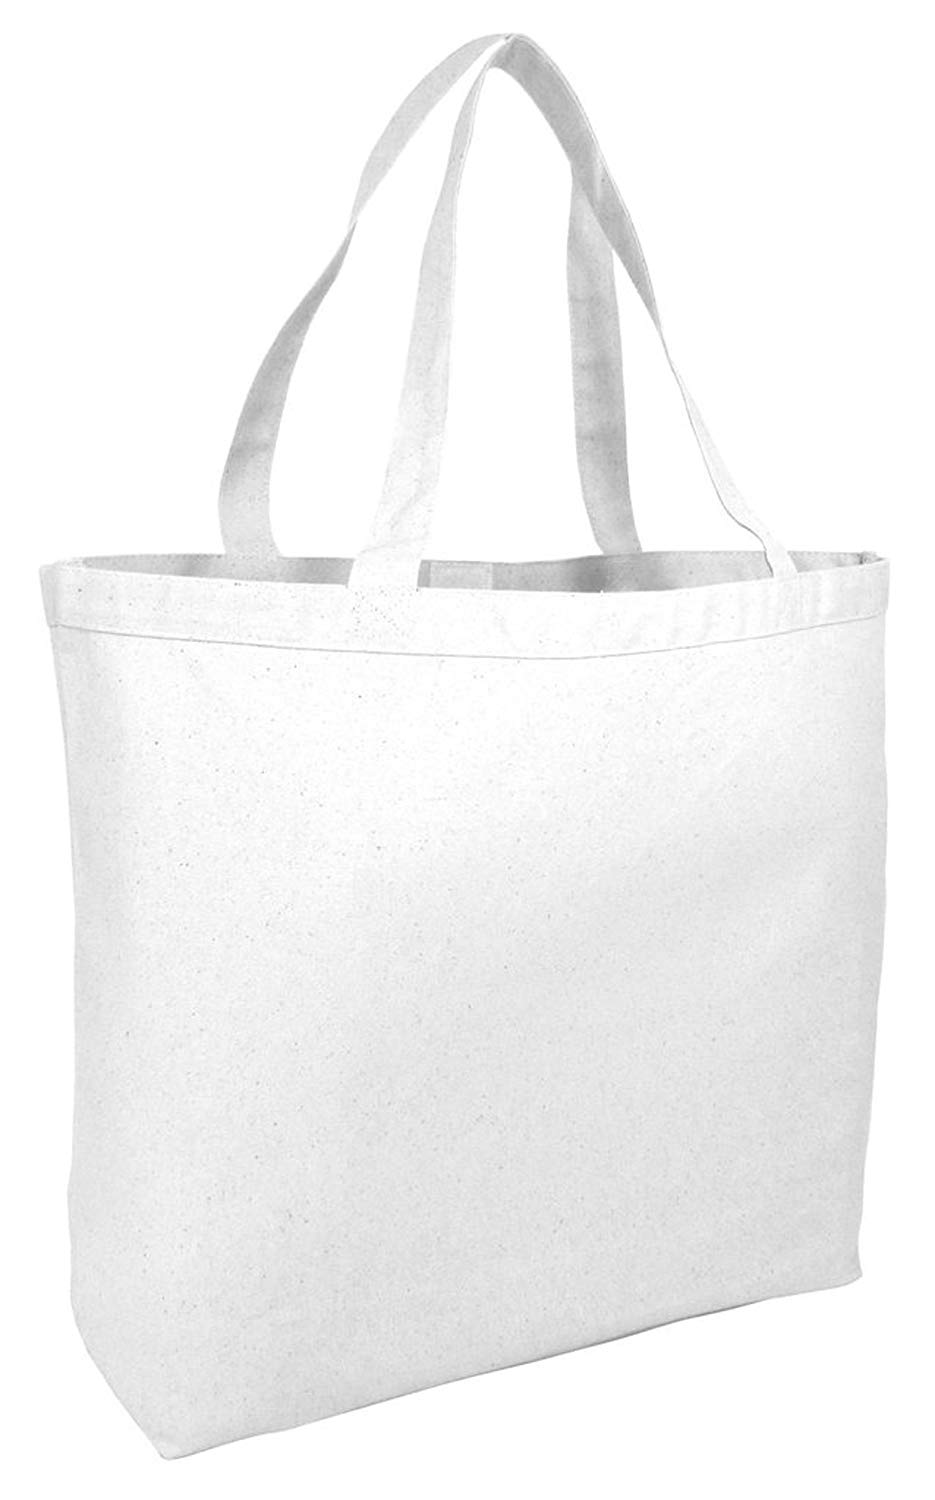 Get Quotations 12 Pack Large Heavy Canvas Tote Bags With Velcro Closure And Self Fabric Handles Whole